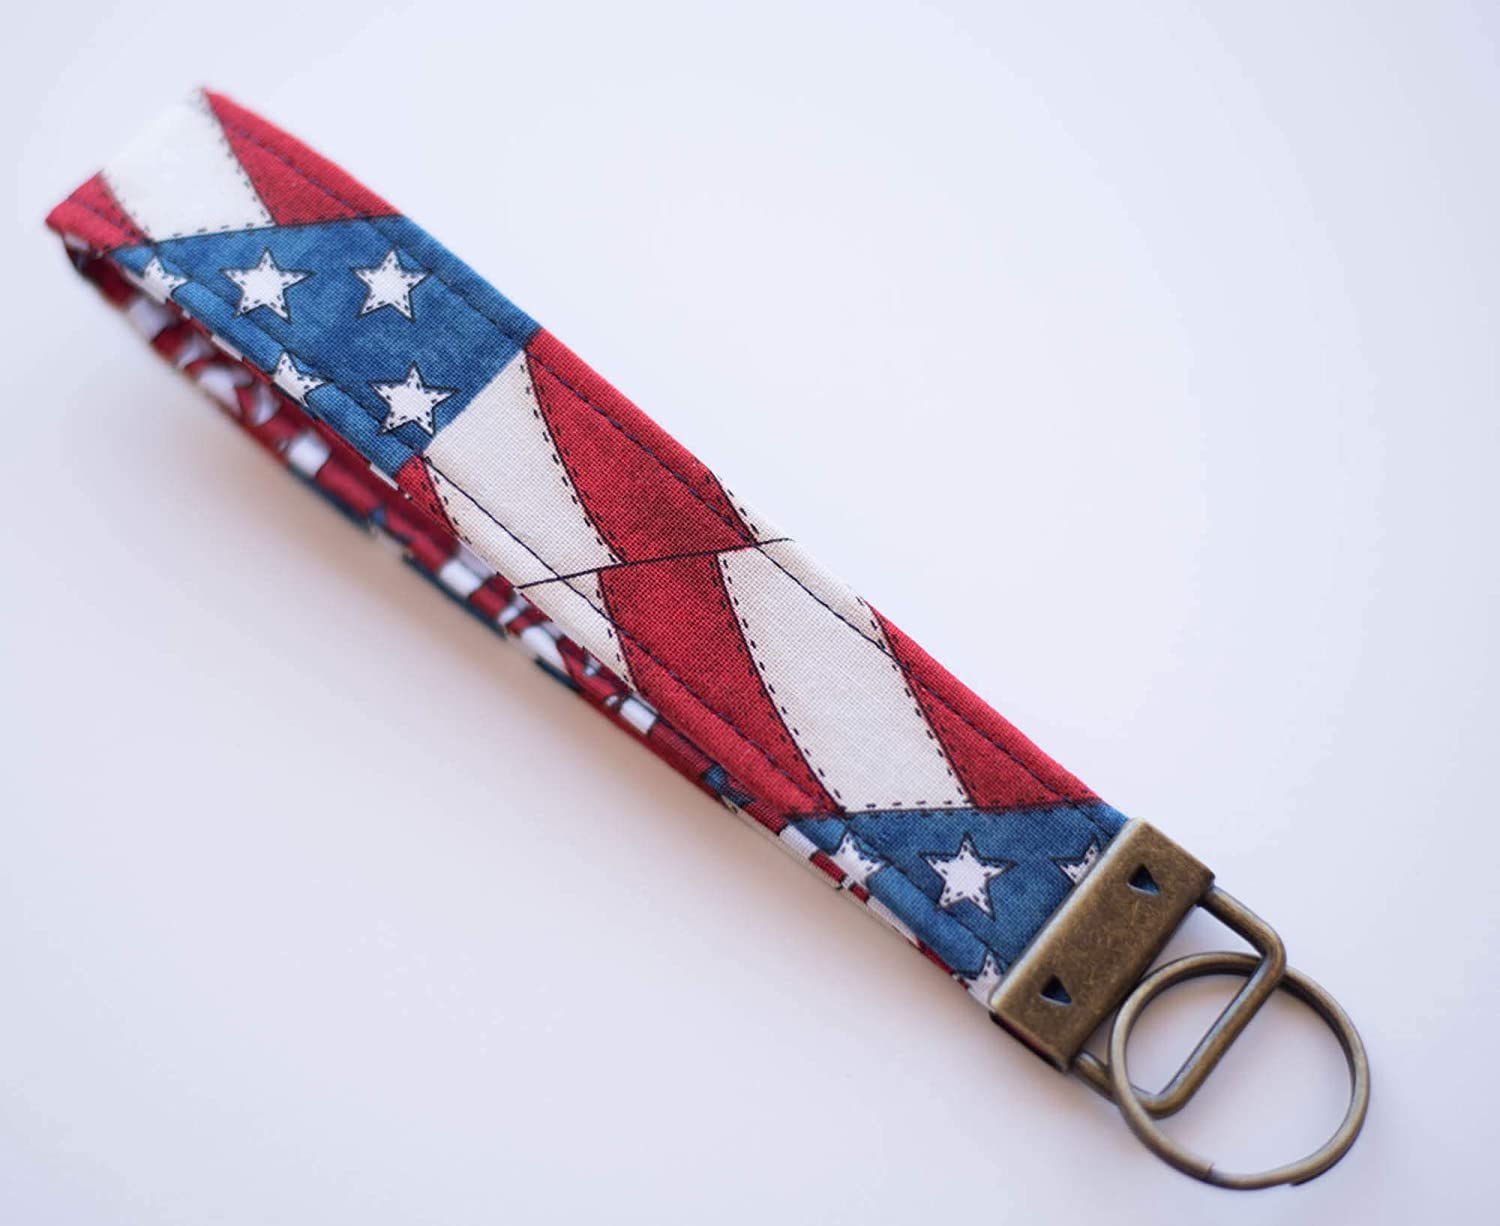 Details about  /Patriotic Rustic American Flag Key Fob Wristlet Keychain